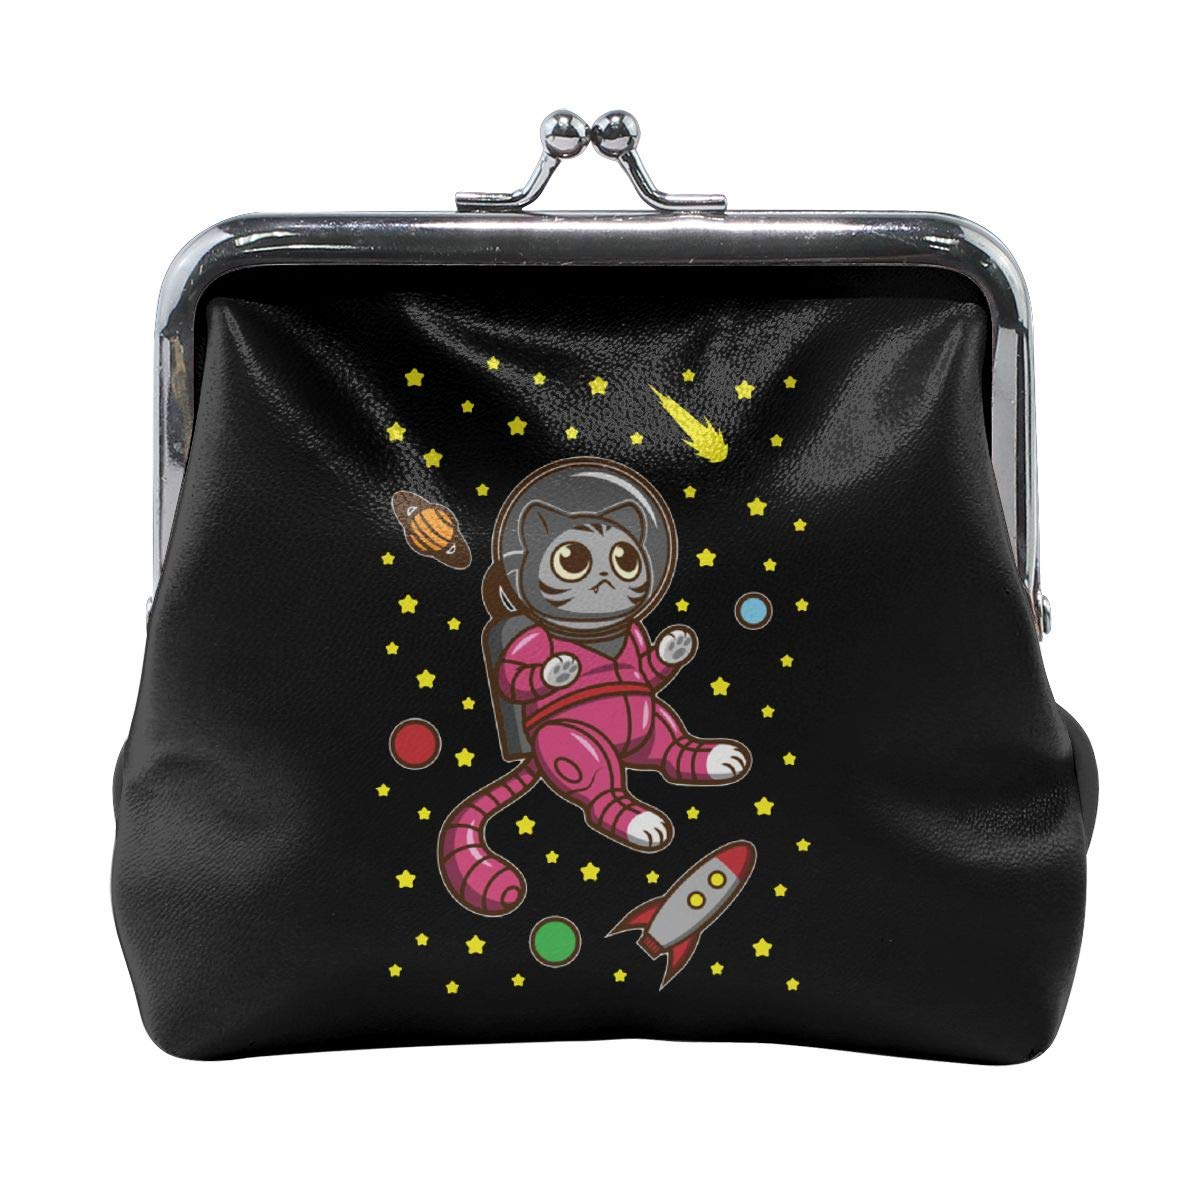 Cats In Space Cute Buckle Coin Purses Buckle Buckle Change Purse Wallets